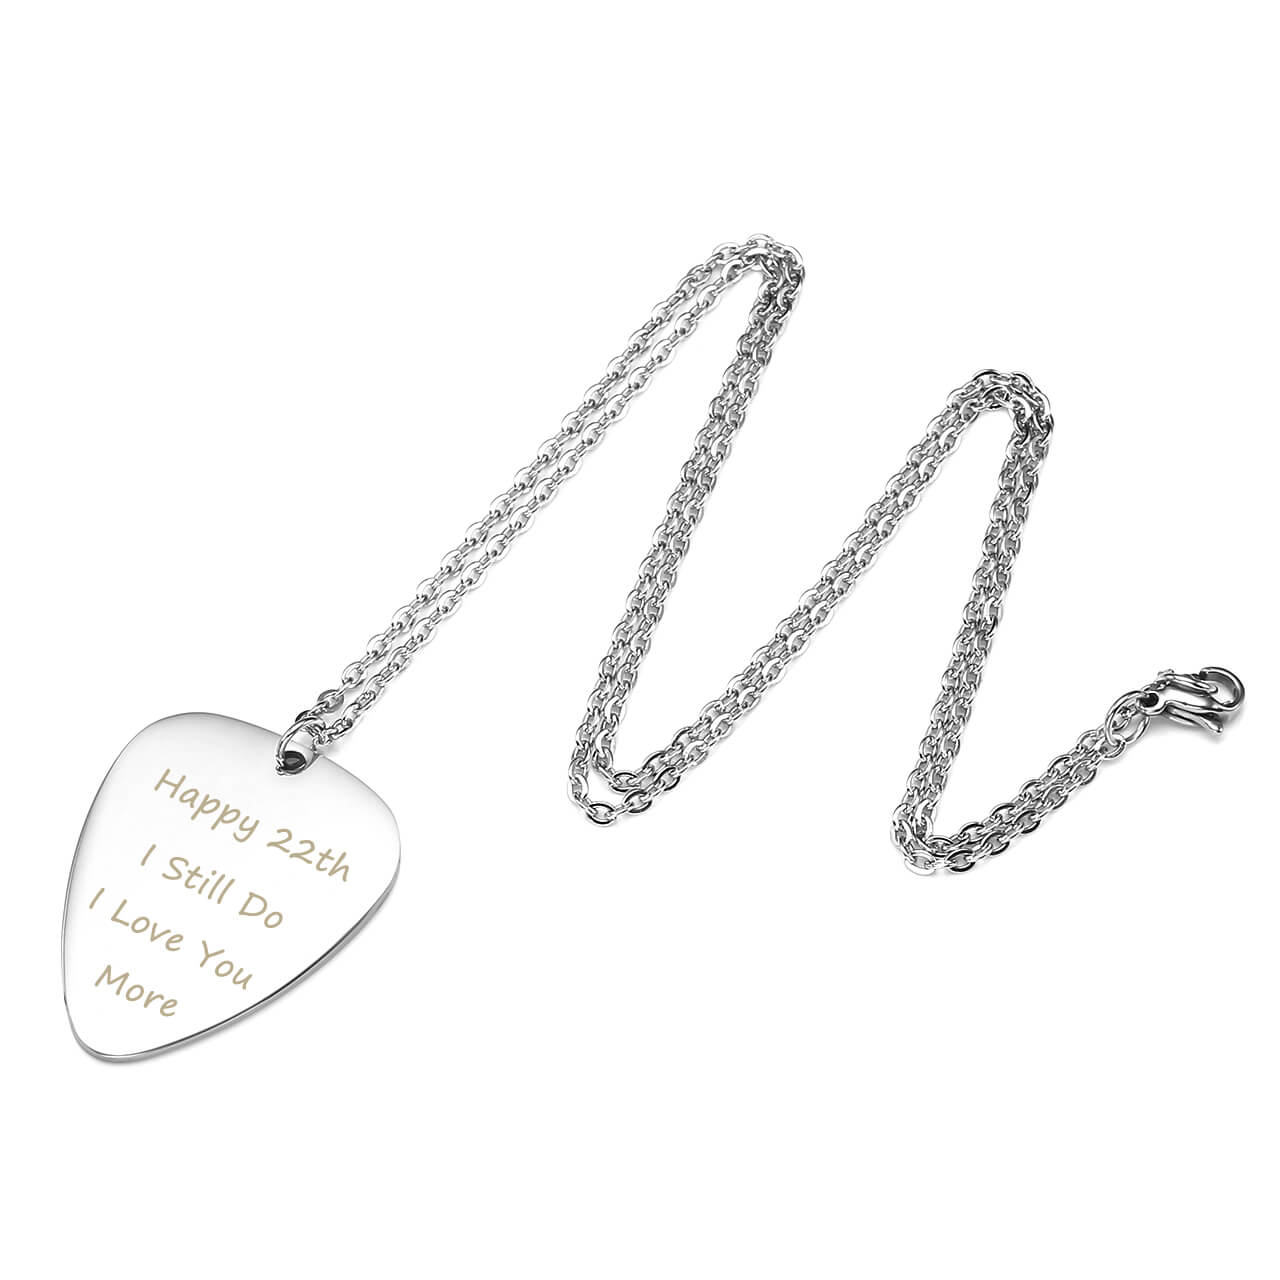 metal picks Guitar pick necklace with personalized words engraved on both sides front and back custom text gift ideas for music lovers